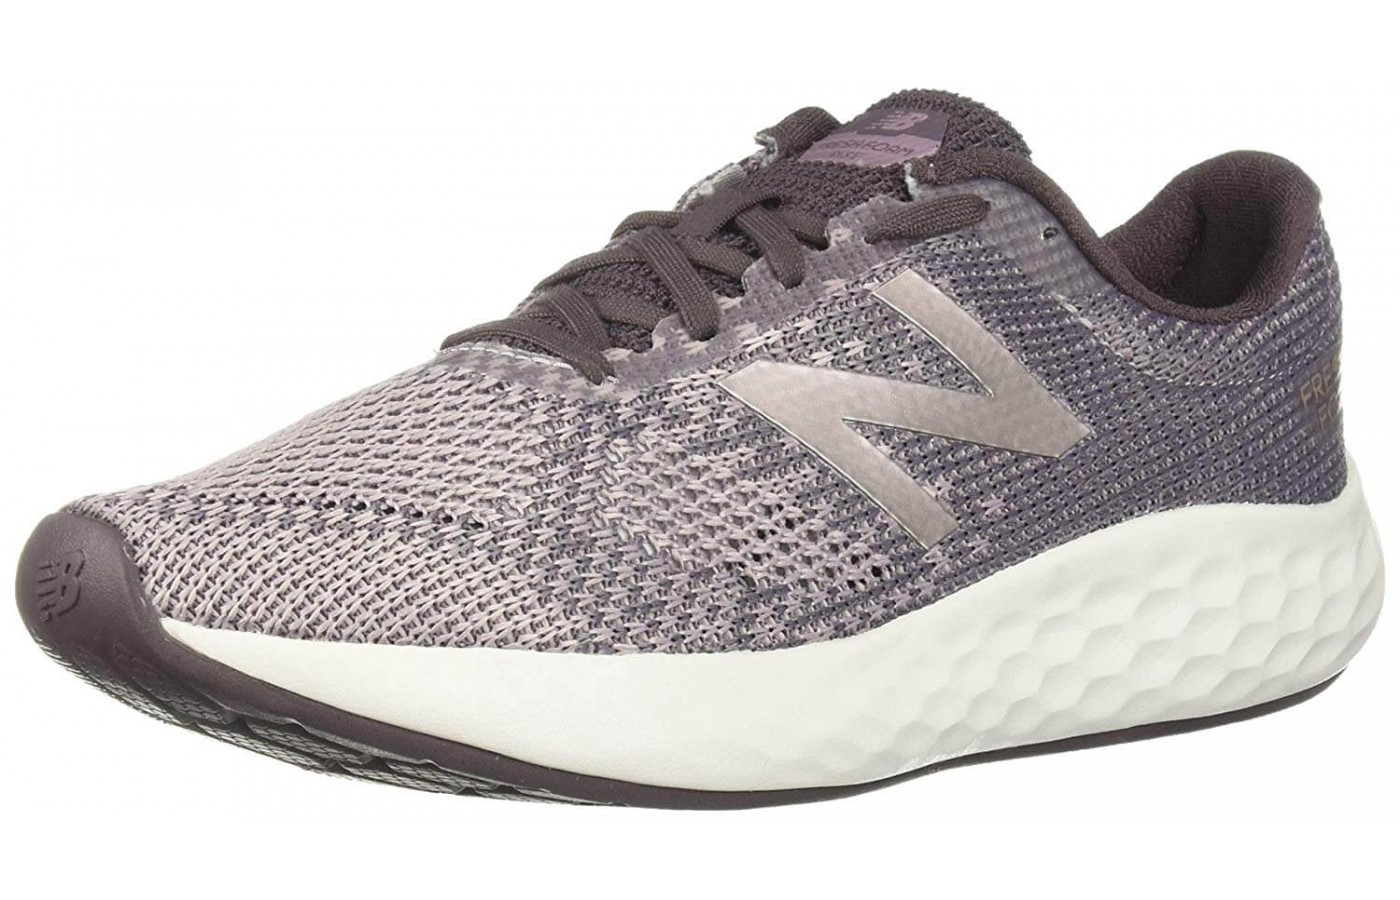 d3076e85ae New Balance Rise V1 Reviewed for Performance in 2019 | WalkJogRun